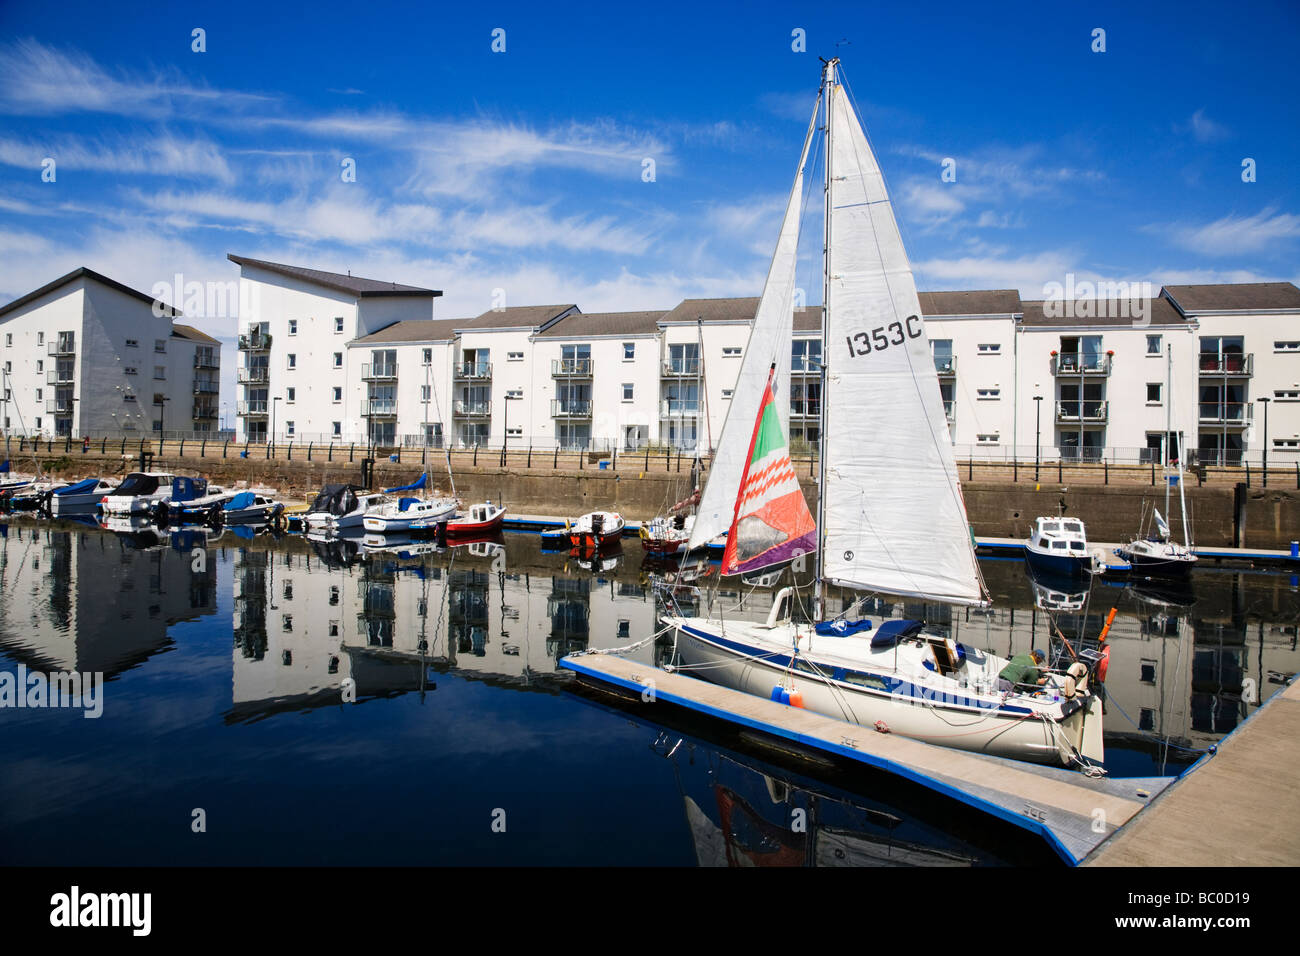 A yacht moored in Ardrossan harbour, North Ayrshire, Scotland. - Stock Image